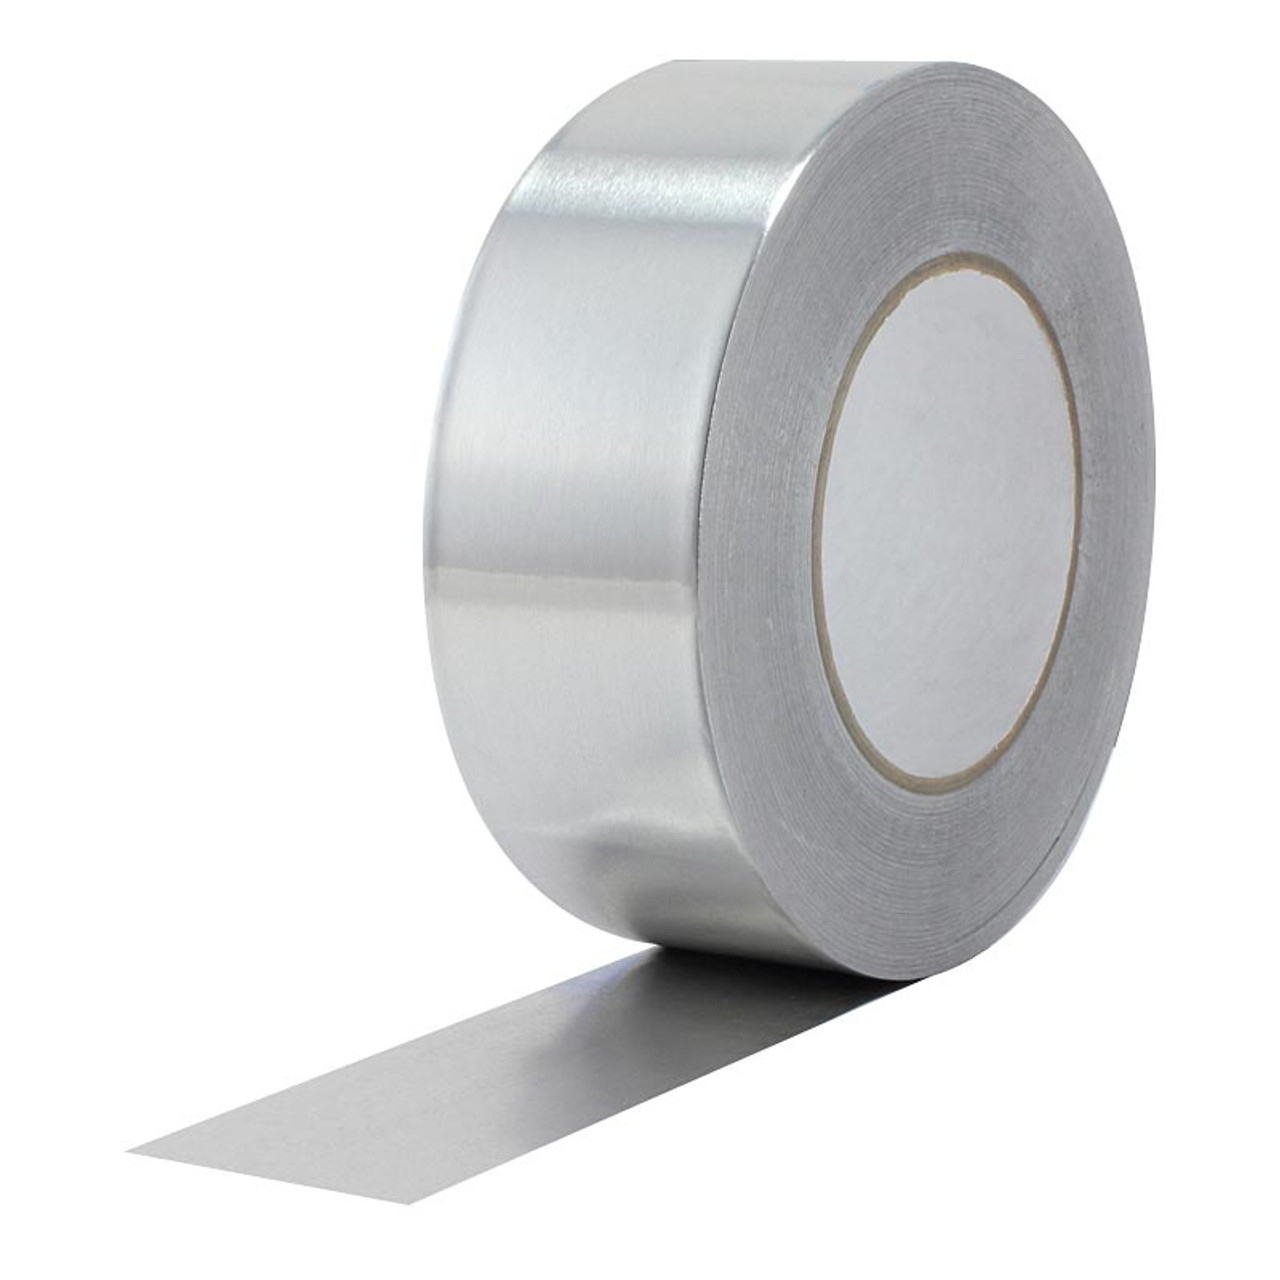 "Metal Foil Tape 2"" x 50 Yards"